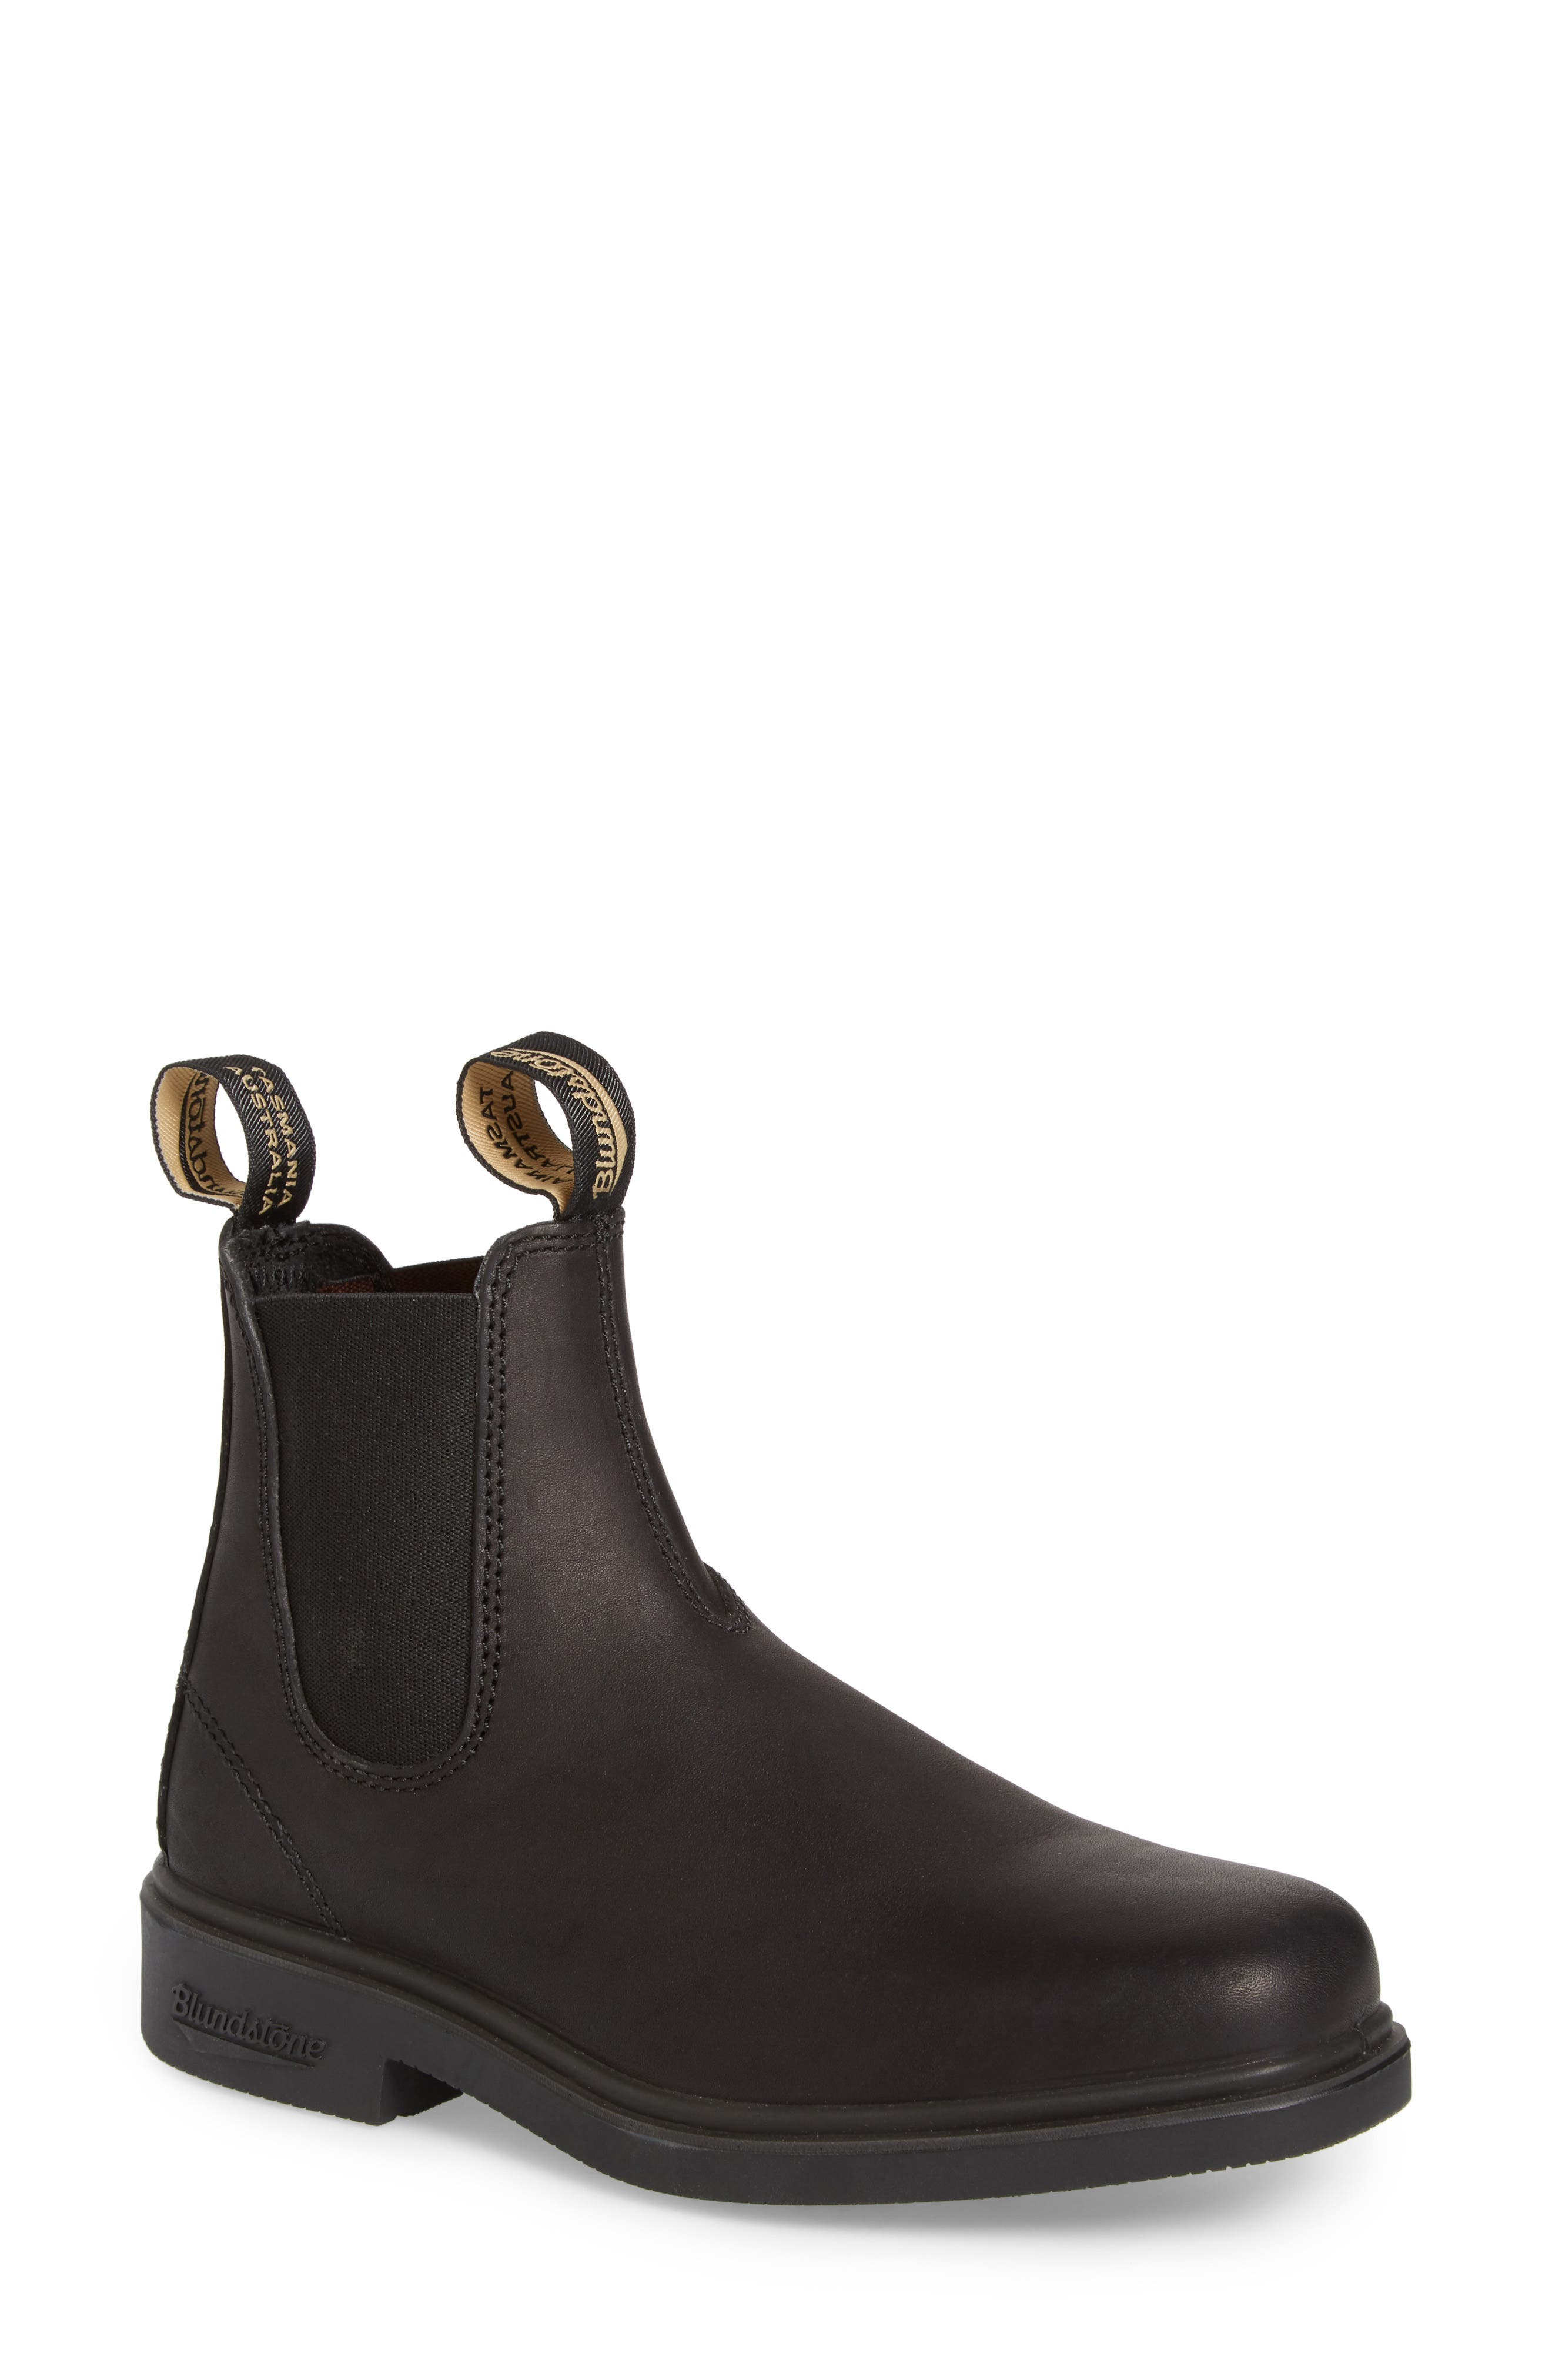 BLUNDSTONE FOOTWEAR,                             Chelsea Boot,                             Main thumbnail 1, color,                             BLACK LEATHER